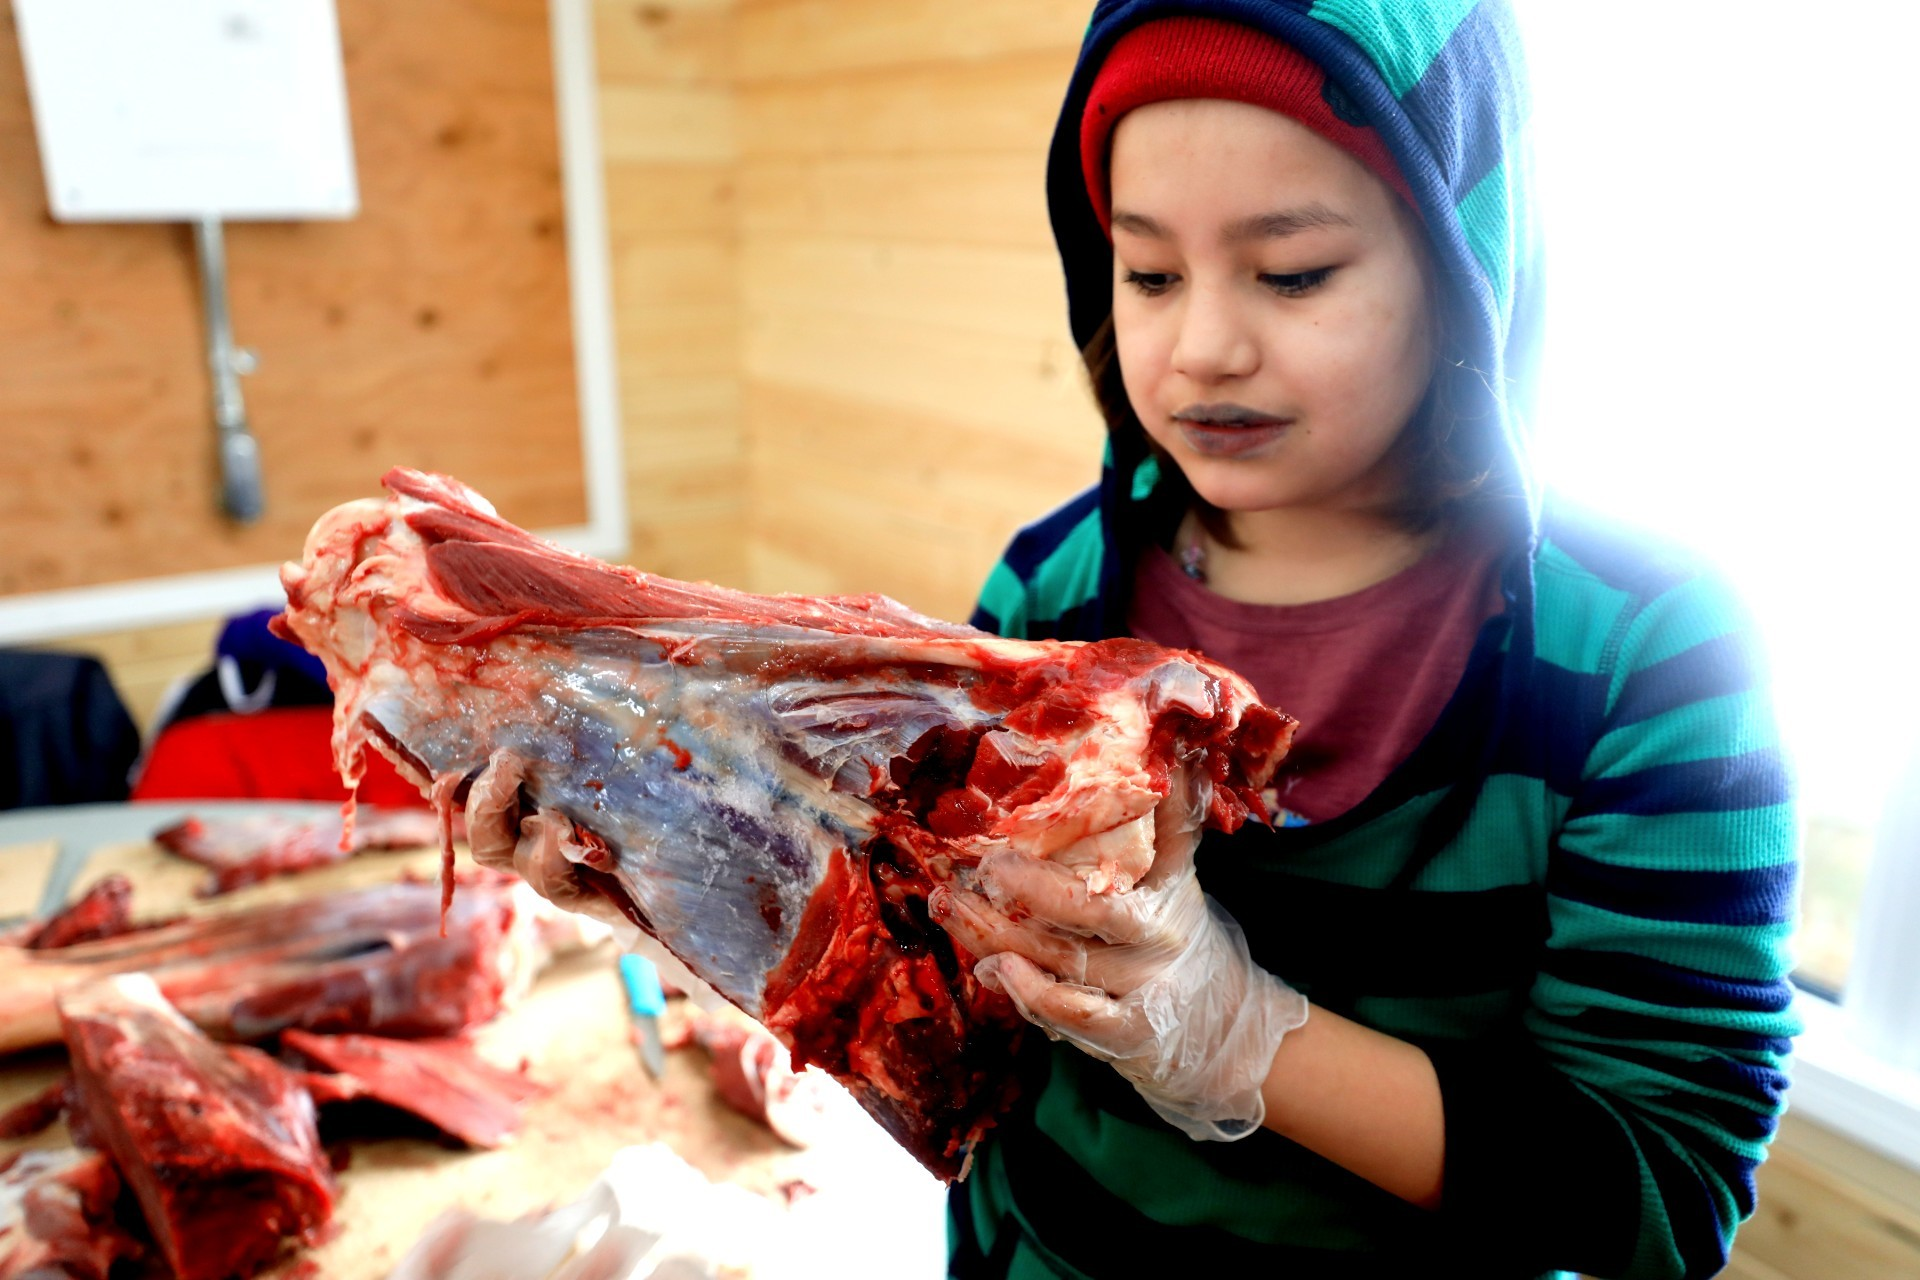 Grade 4 student Noreen Mckenzie learns how to prepare moose meat. (Heidi Atter/CBC)